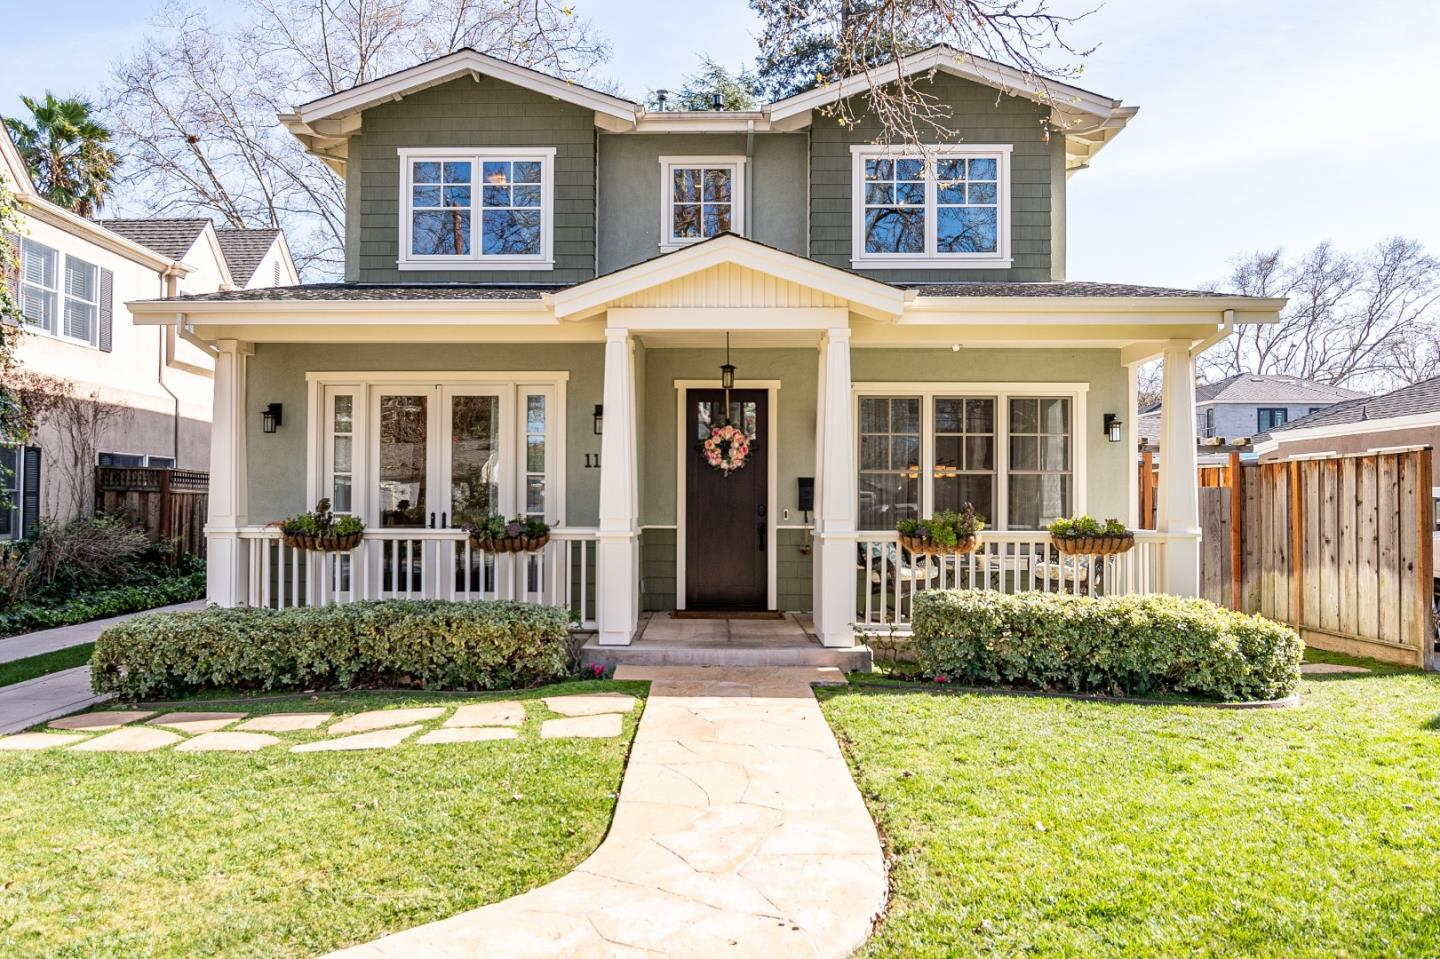 Photo of 1116 Fairview AVE, SAN JOSE, CA 95125